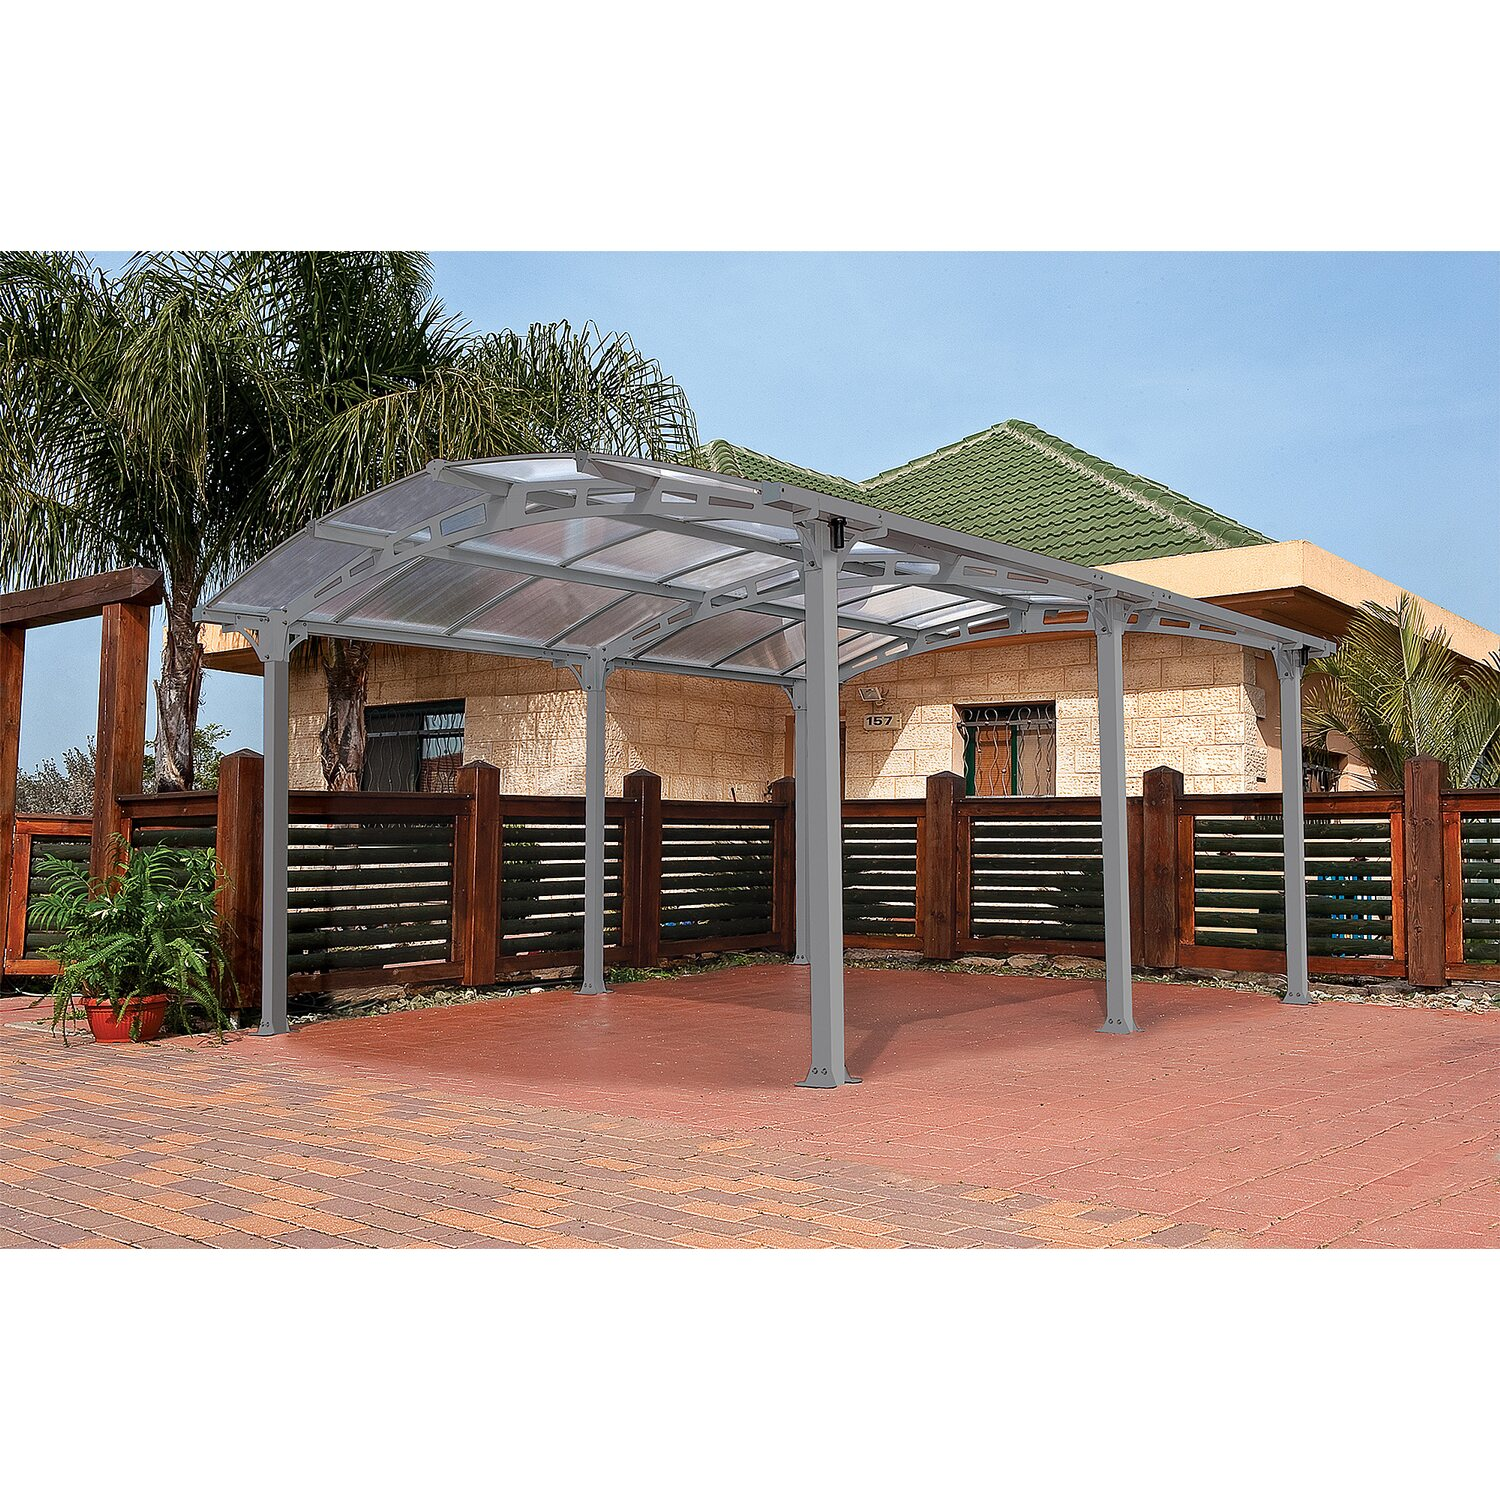 tepro carport arcadia 5000 mit bogendach inkl regenrinne kaufen bei obi. Black Bedroom Furniture Sets. Home Design Ideas